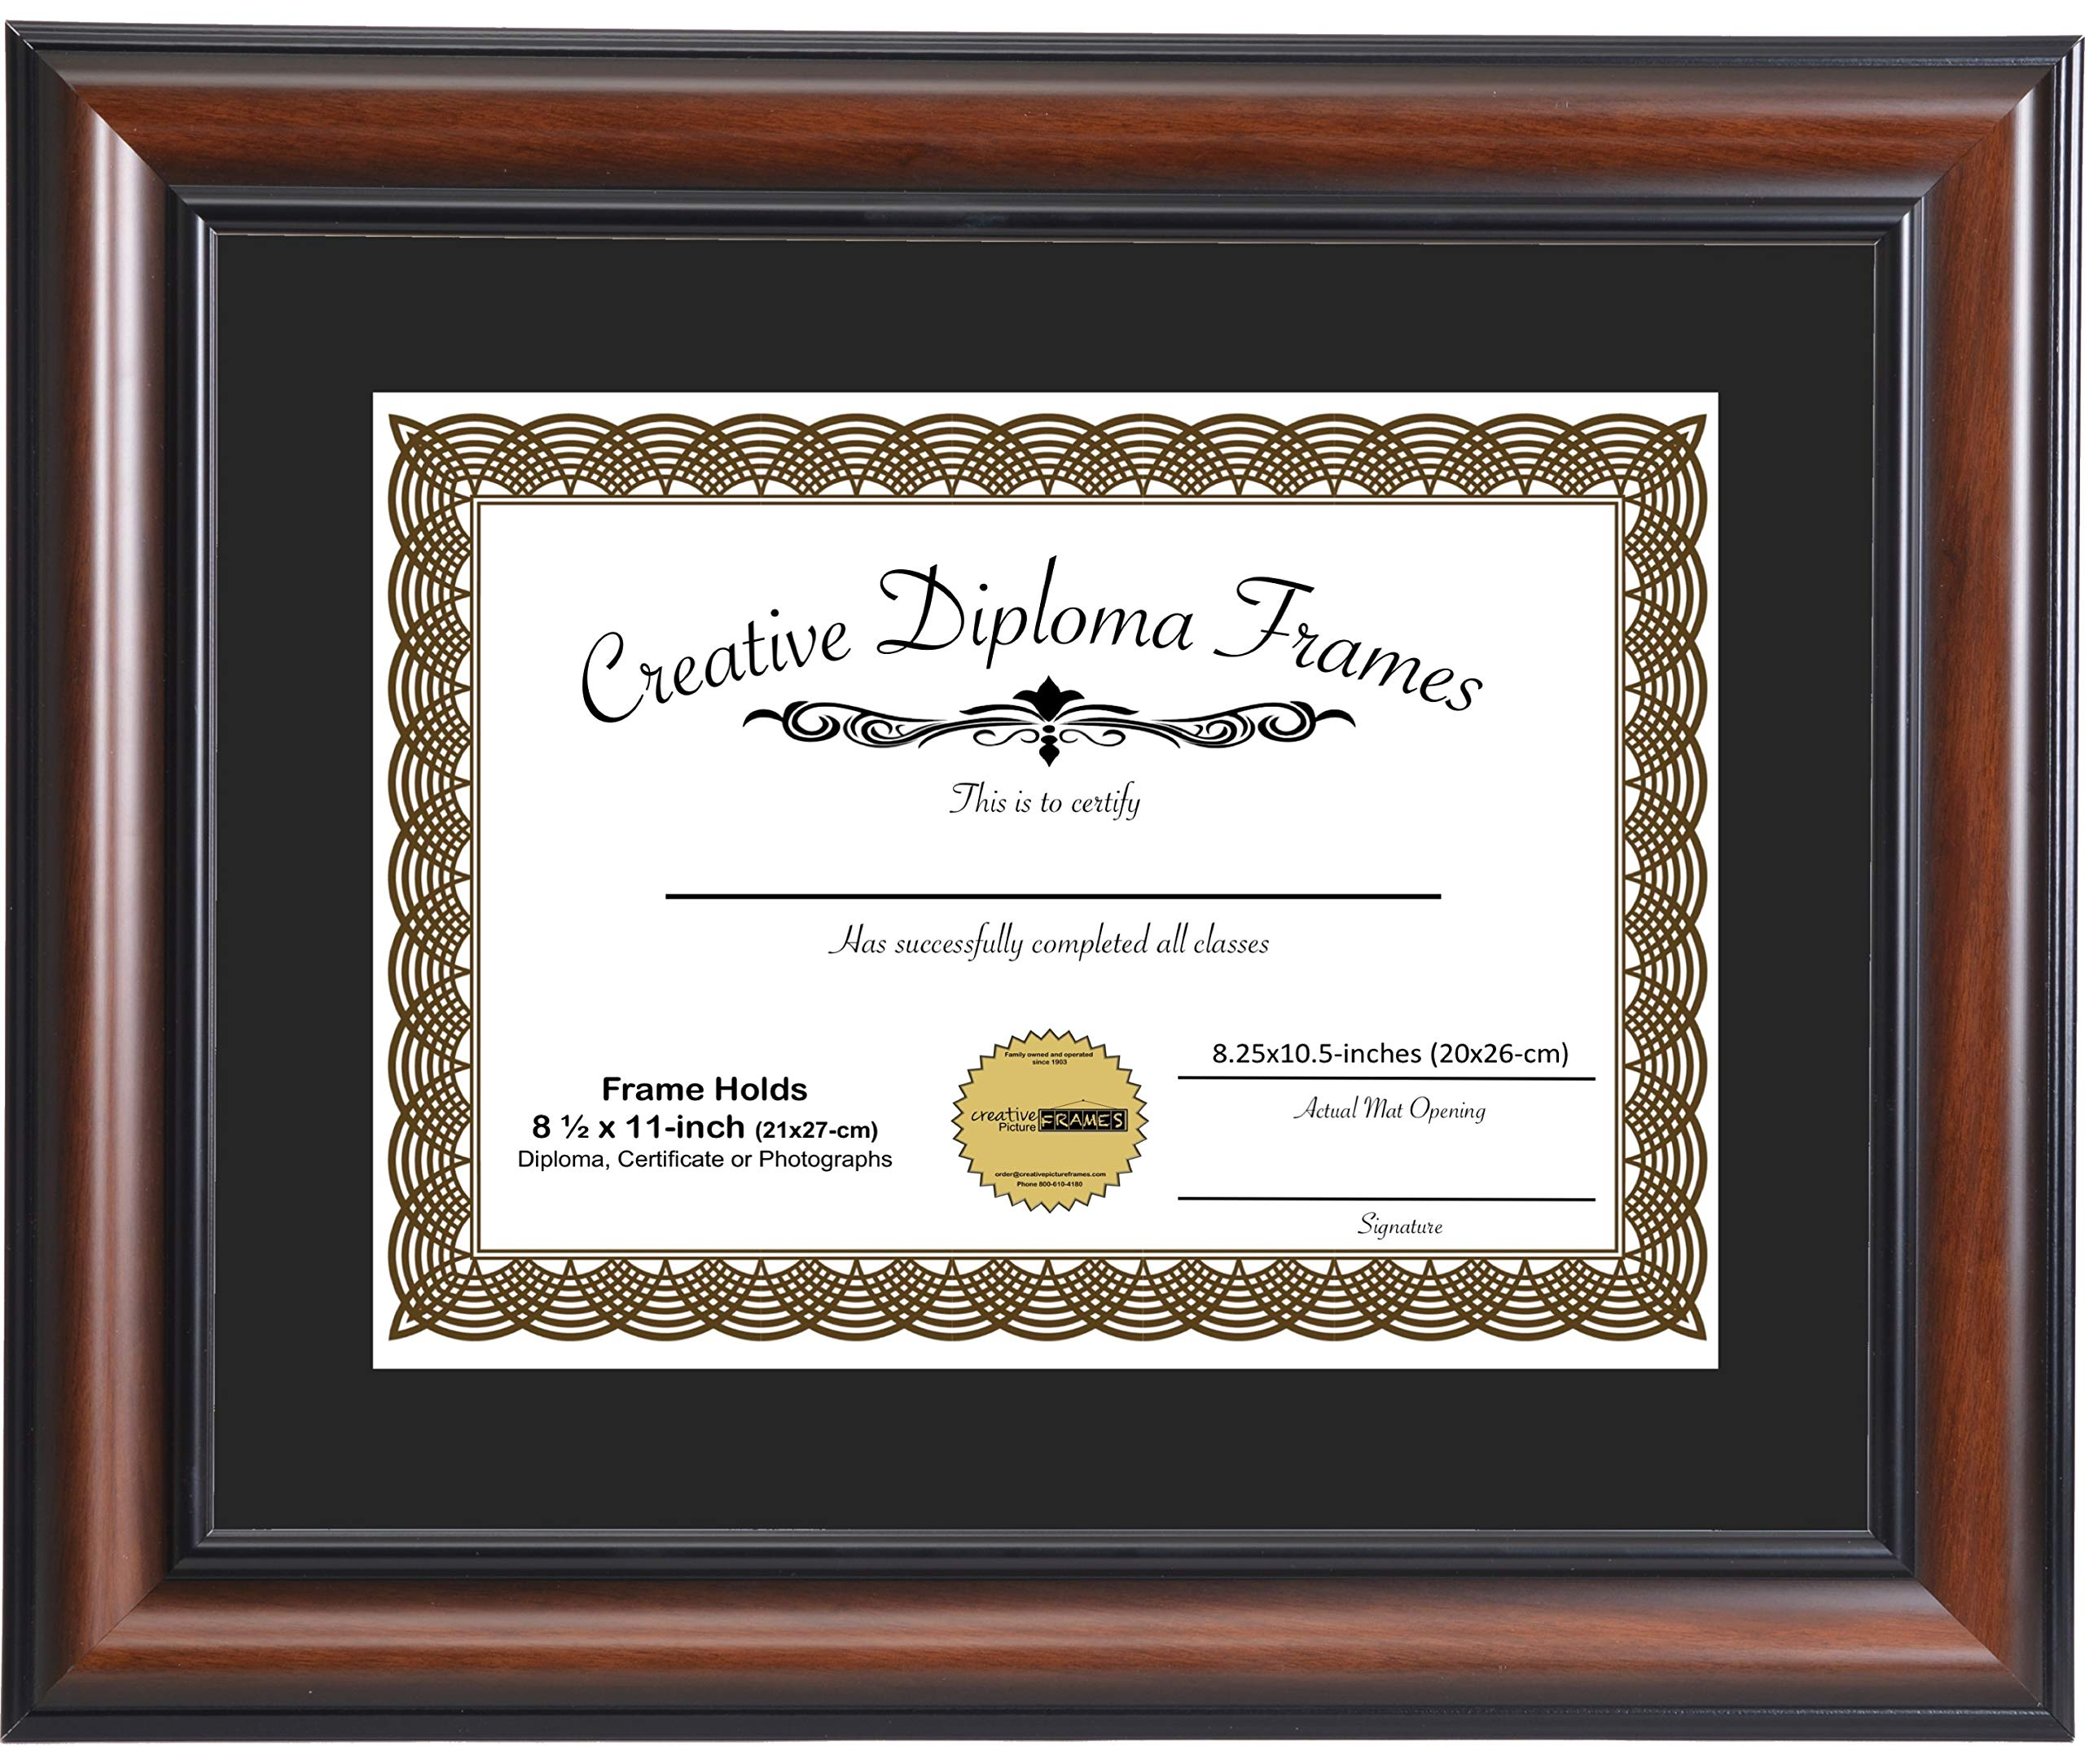 CreativePF [wal5171-b] Eco-Walnut Collection 11x14-inch Wood Finish Picture Frame with Black/White Core Matting Holds 8.5x11-inch Media, with Installed Hangers for Either Orientation